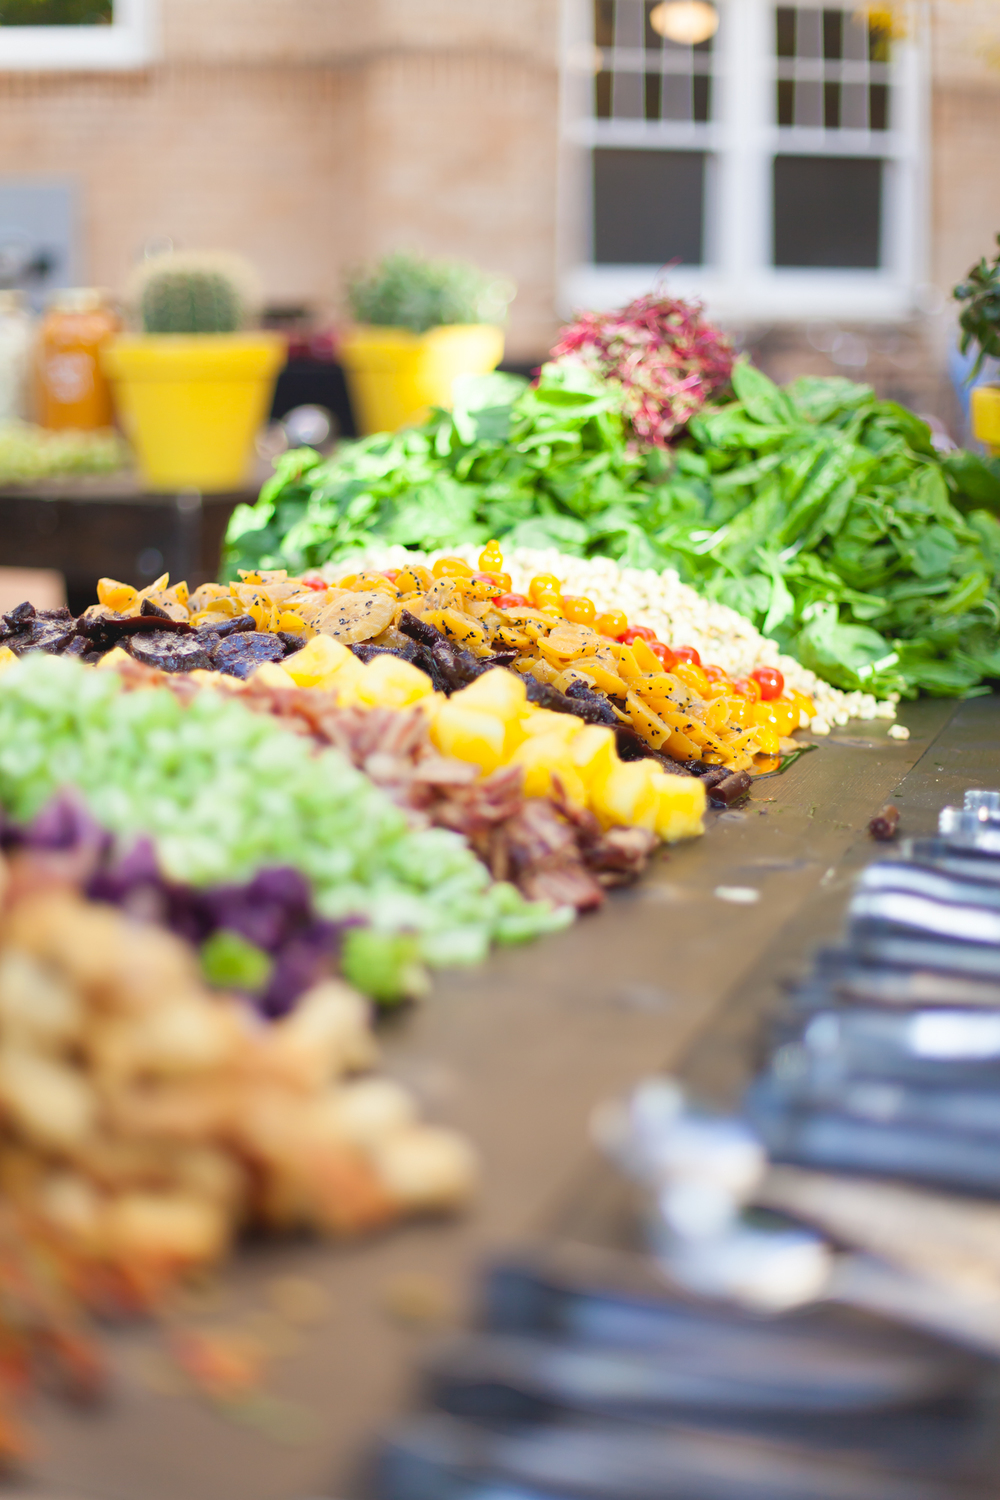 The neatest salad bar we ever did see.